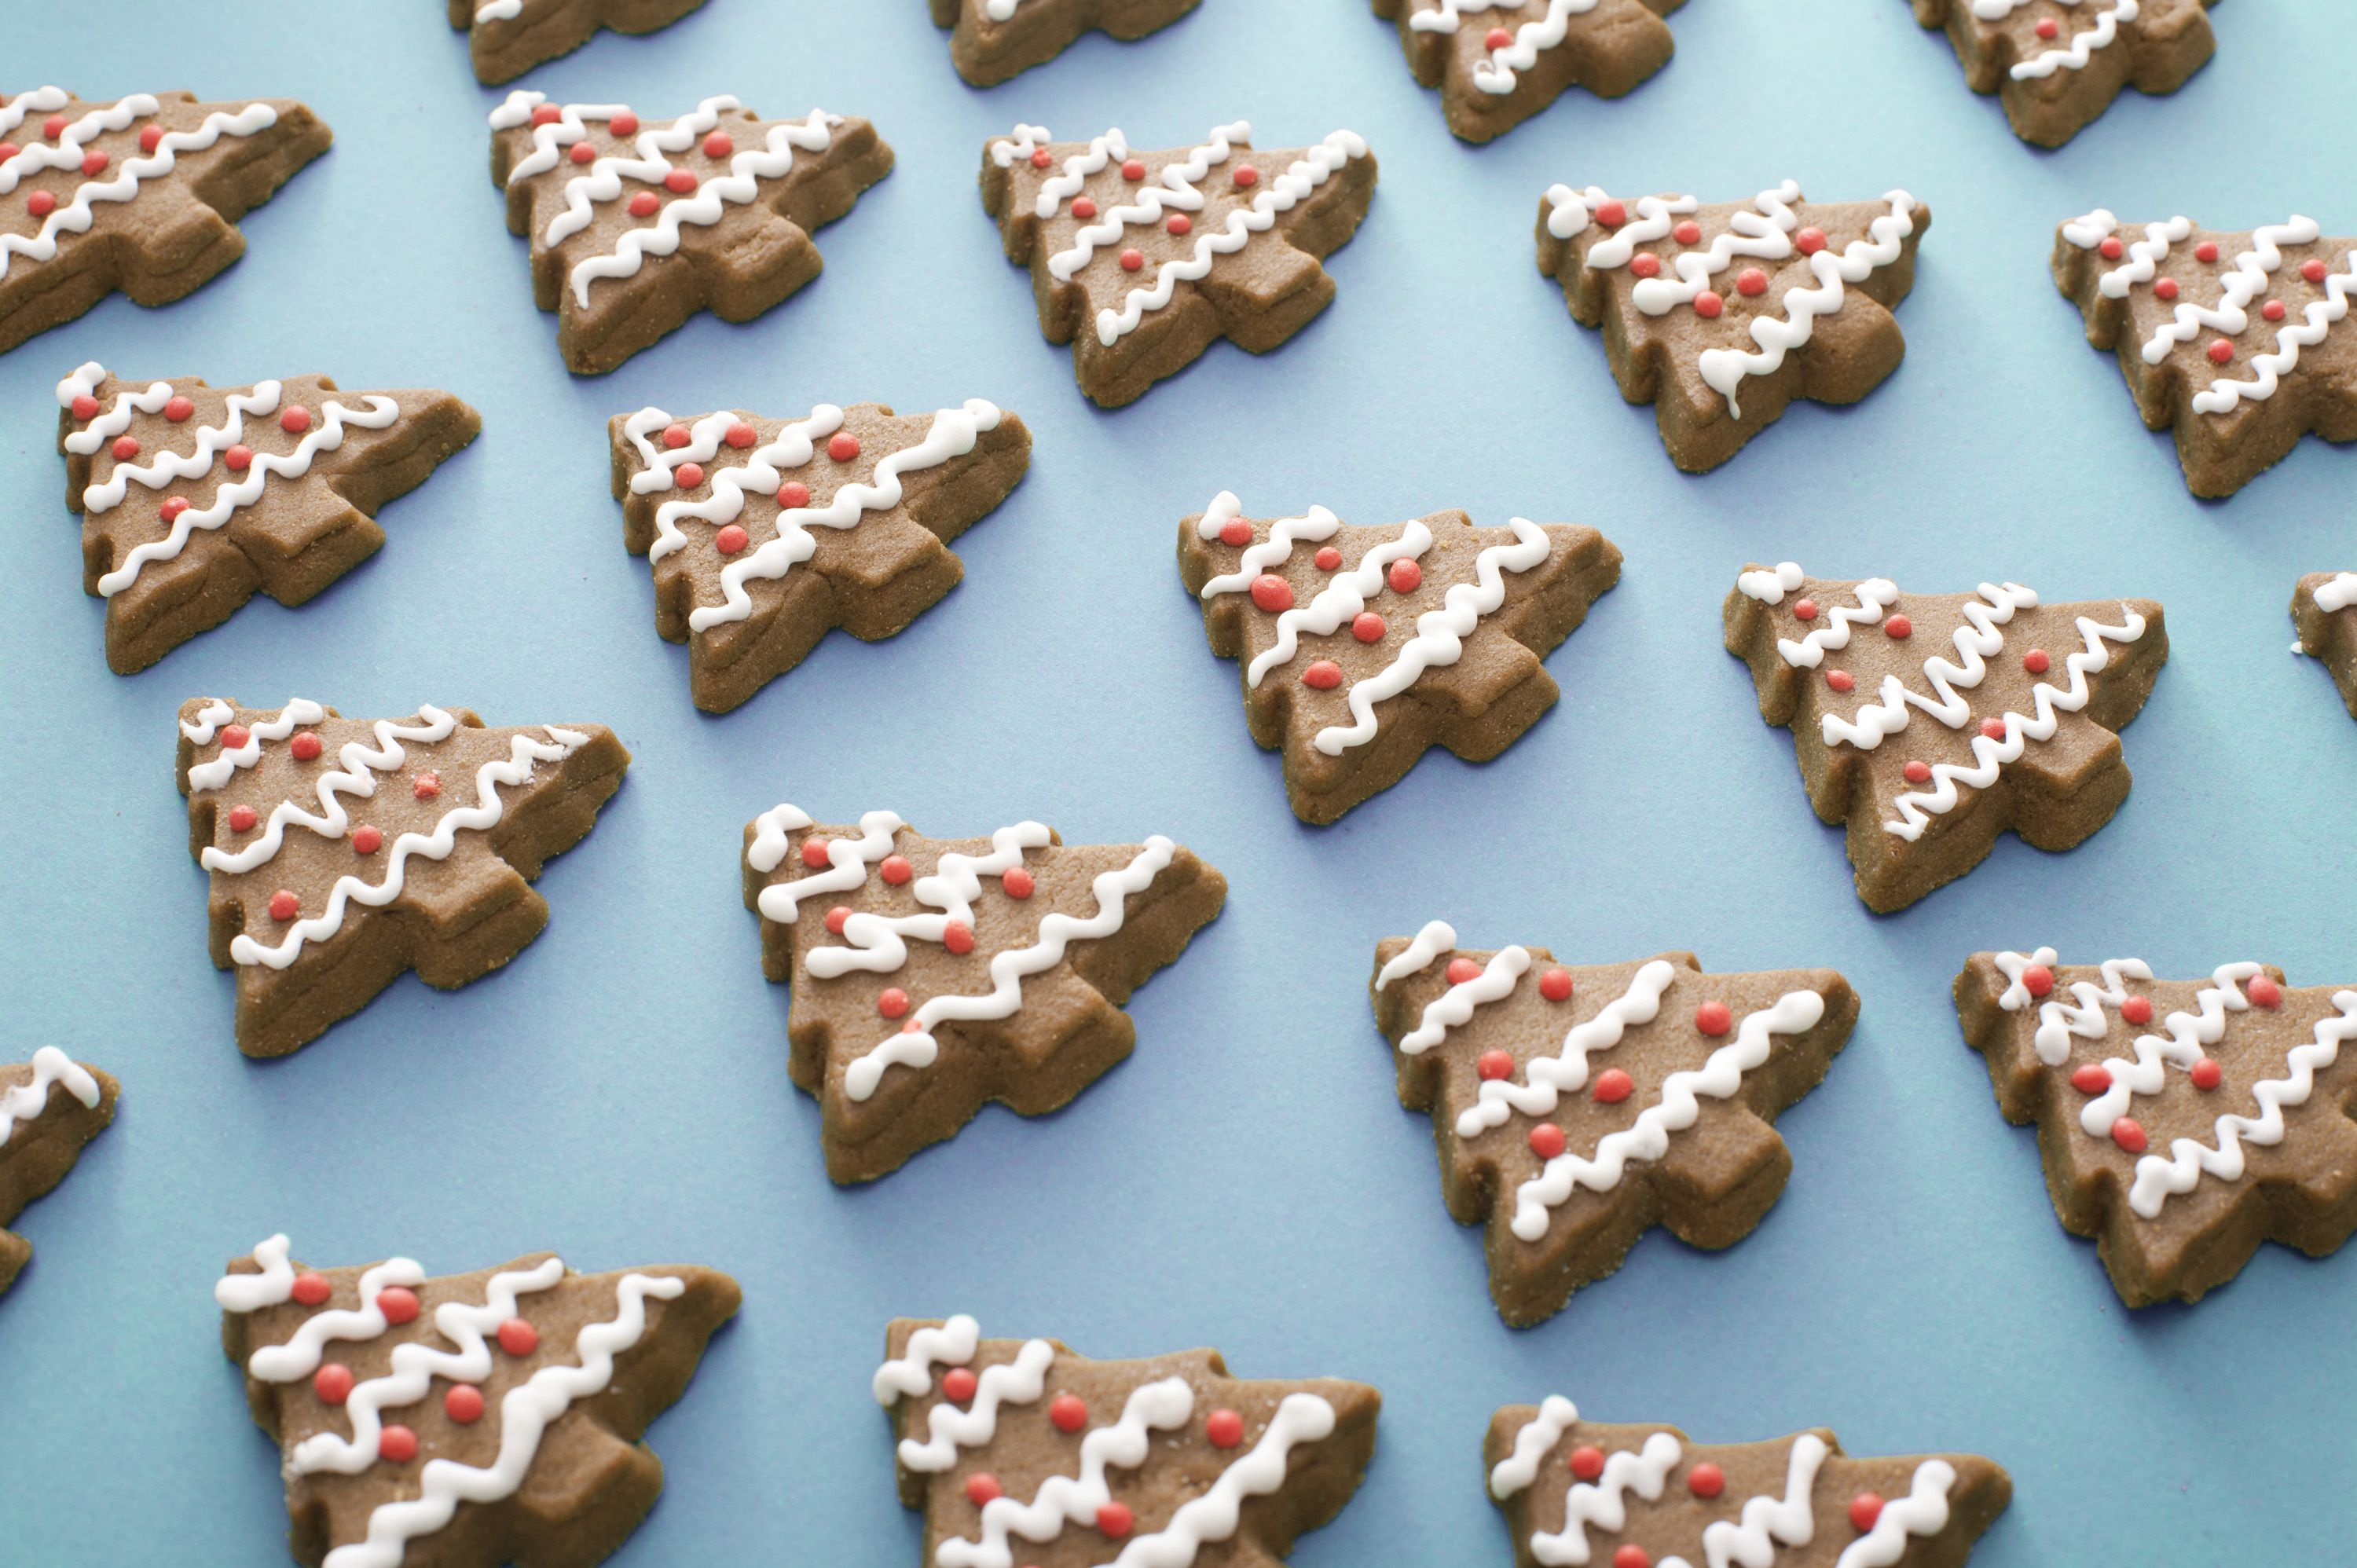 Cool blue background of decorated gingerbread Christmas trees arranged in neat rows for a full frame view of traditional Xmas seasonal fare